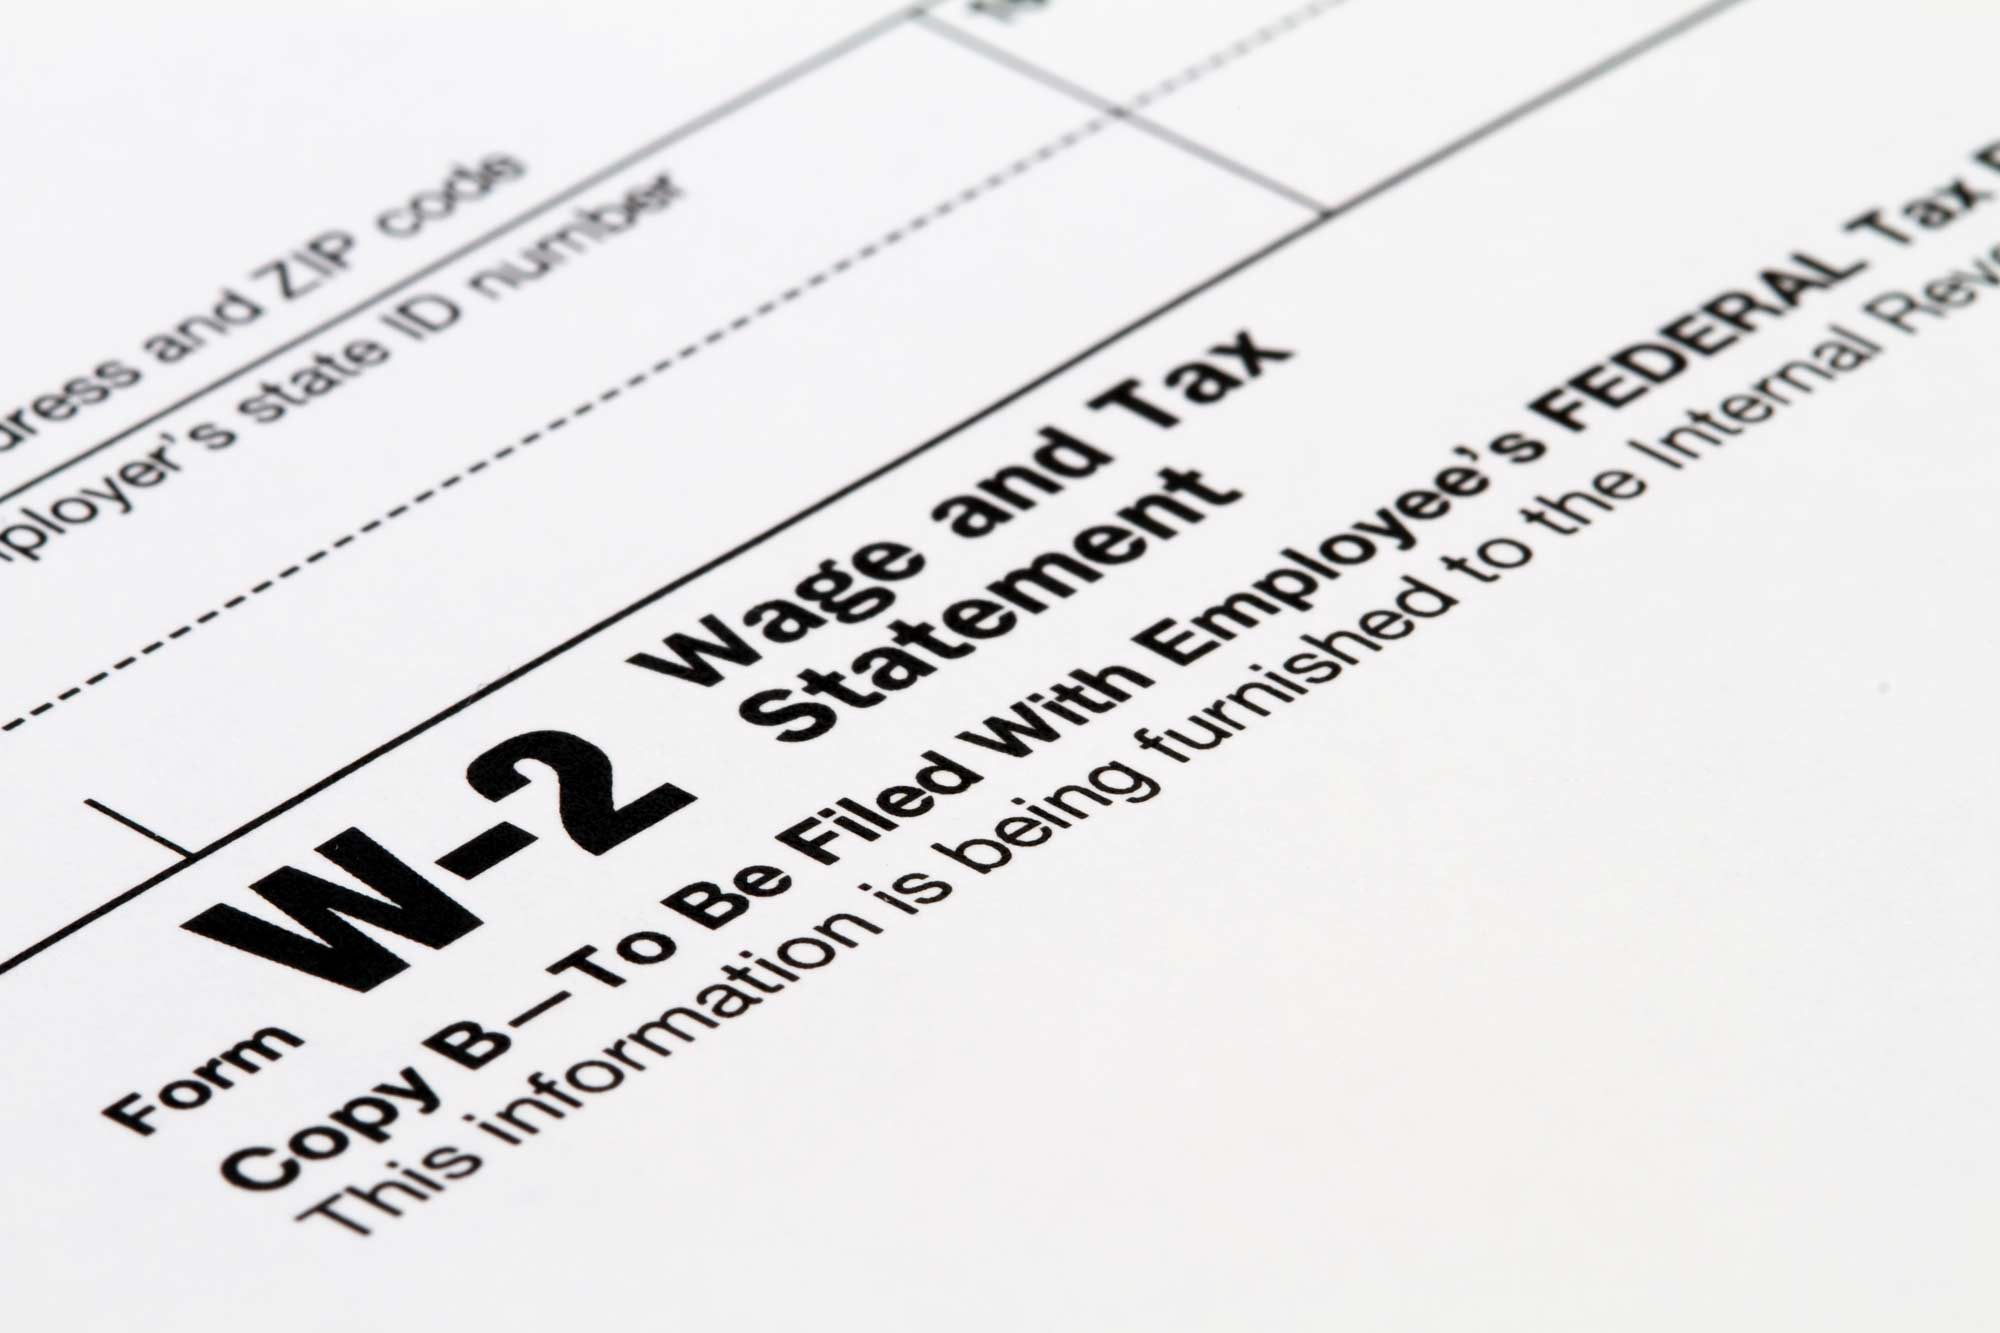 IRS Warns Employers and Taxpayers of Form W-2 Scam